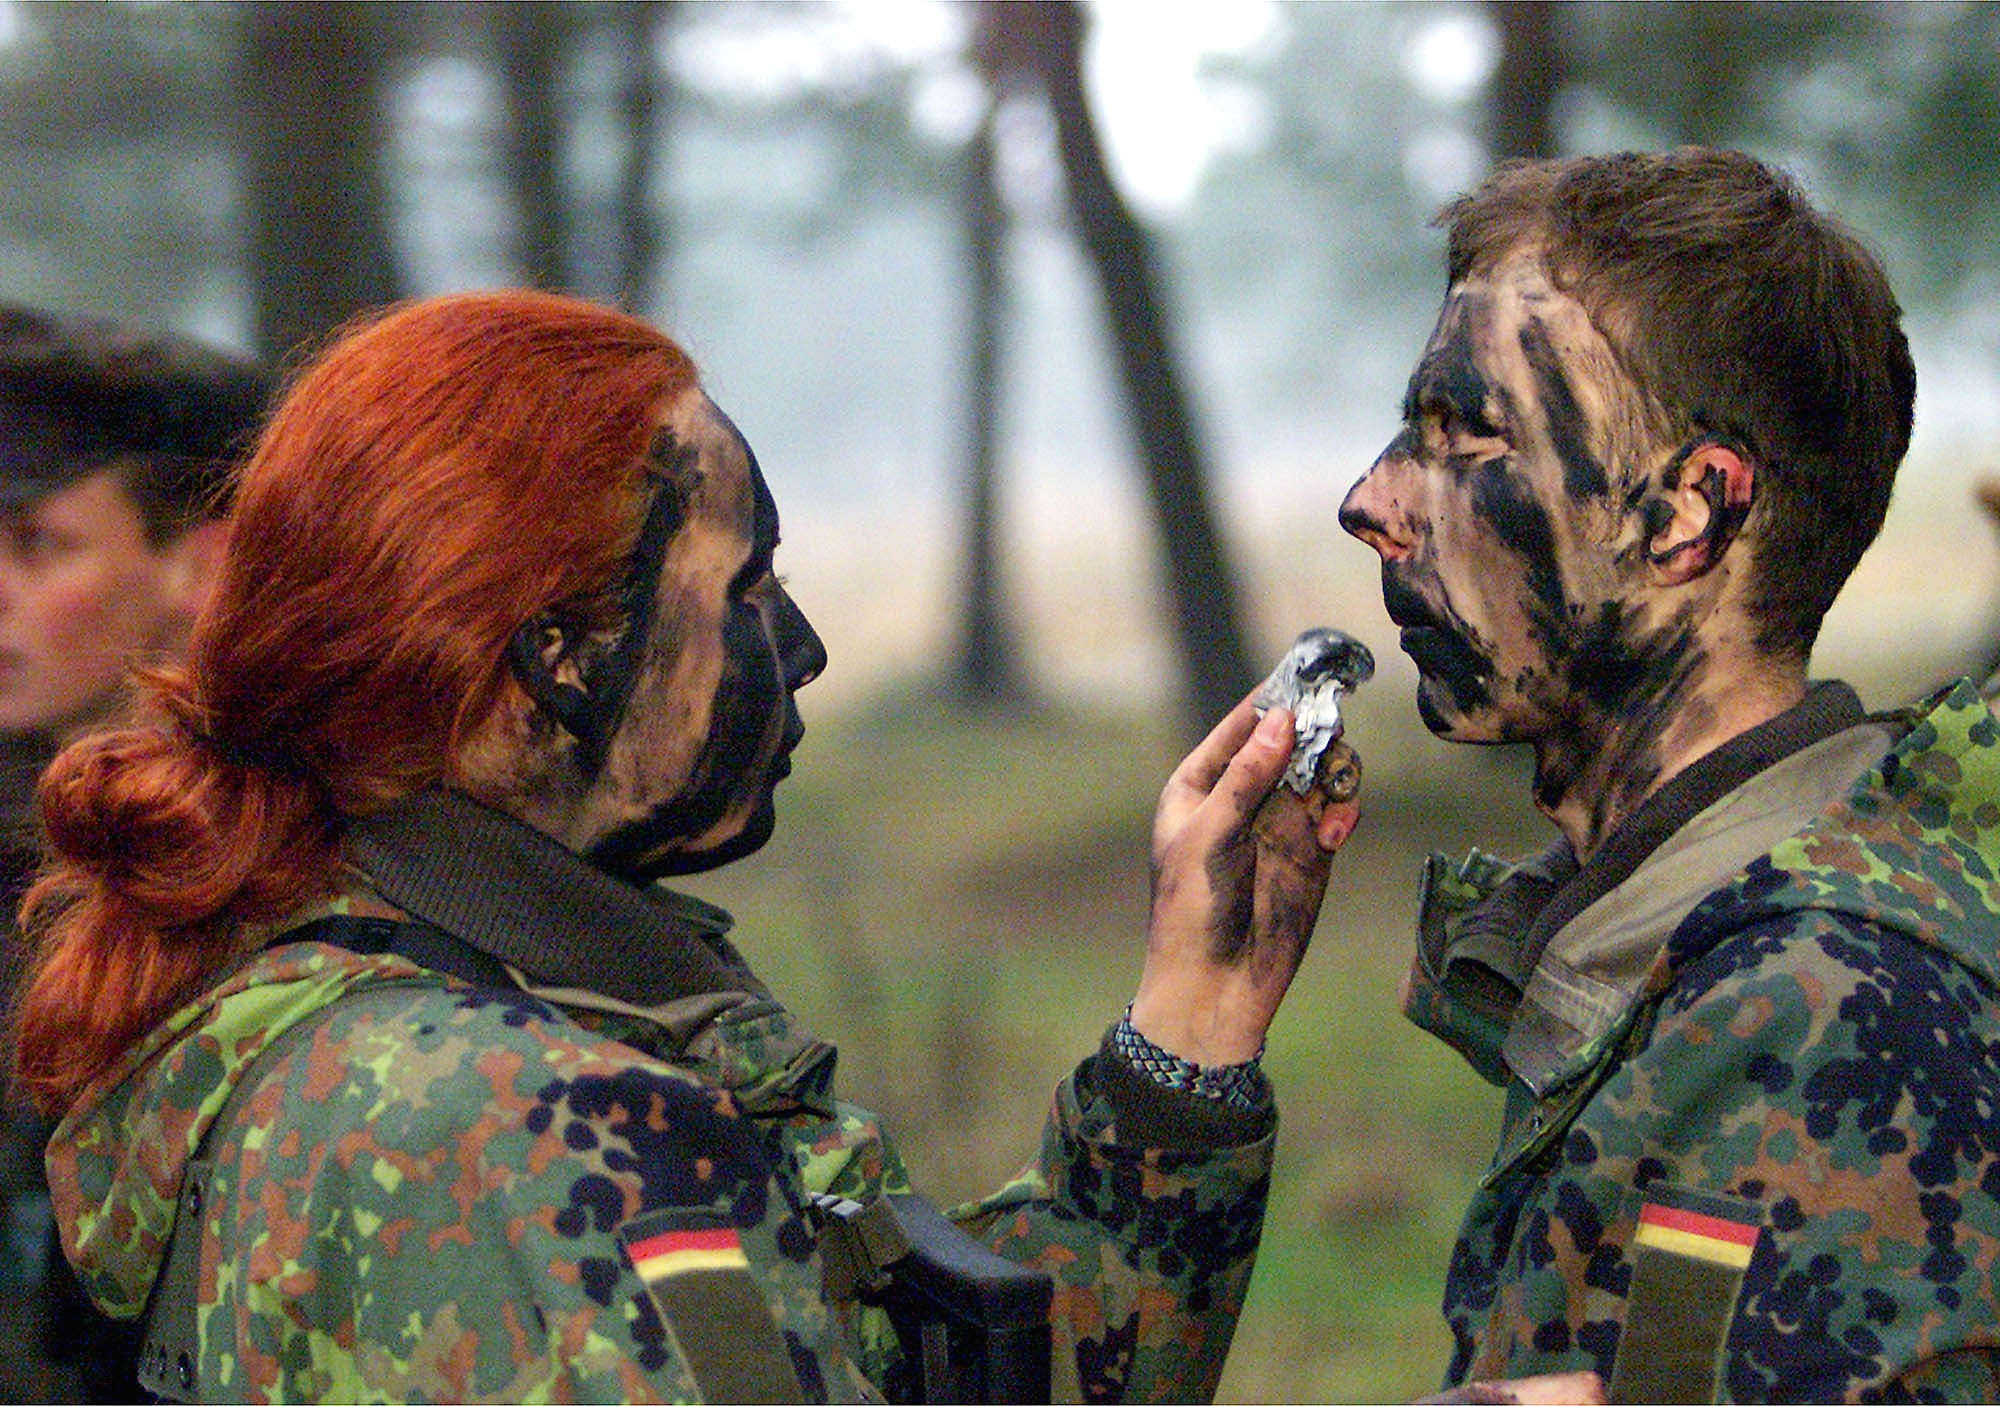 Private Dajana Bartczewski (left) puts camouflage paint on the face of a male soldier during an exercise by German Bundeswehr soldiers from the barracks in Augustdorf, western Germany, on Jan. 9, 2001.